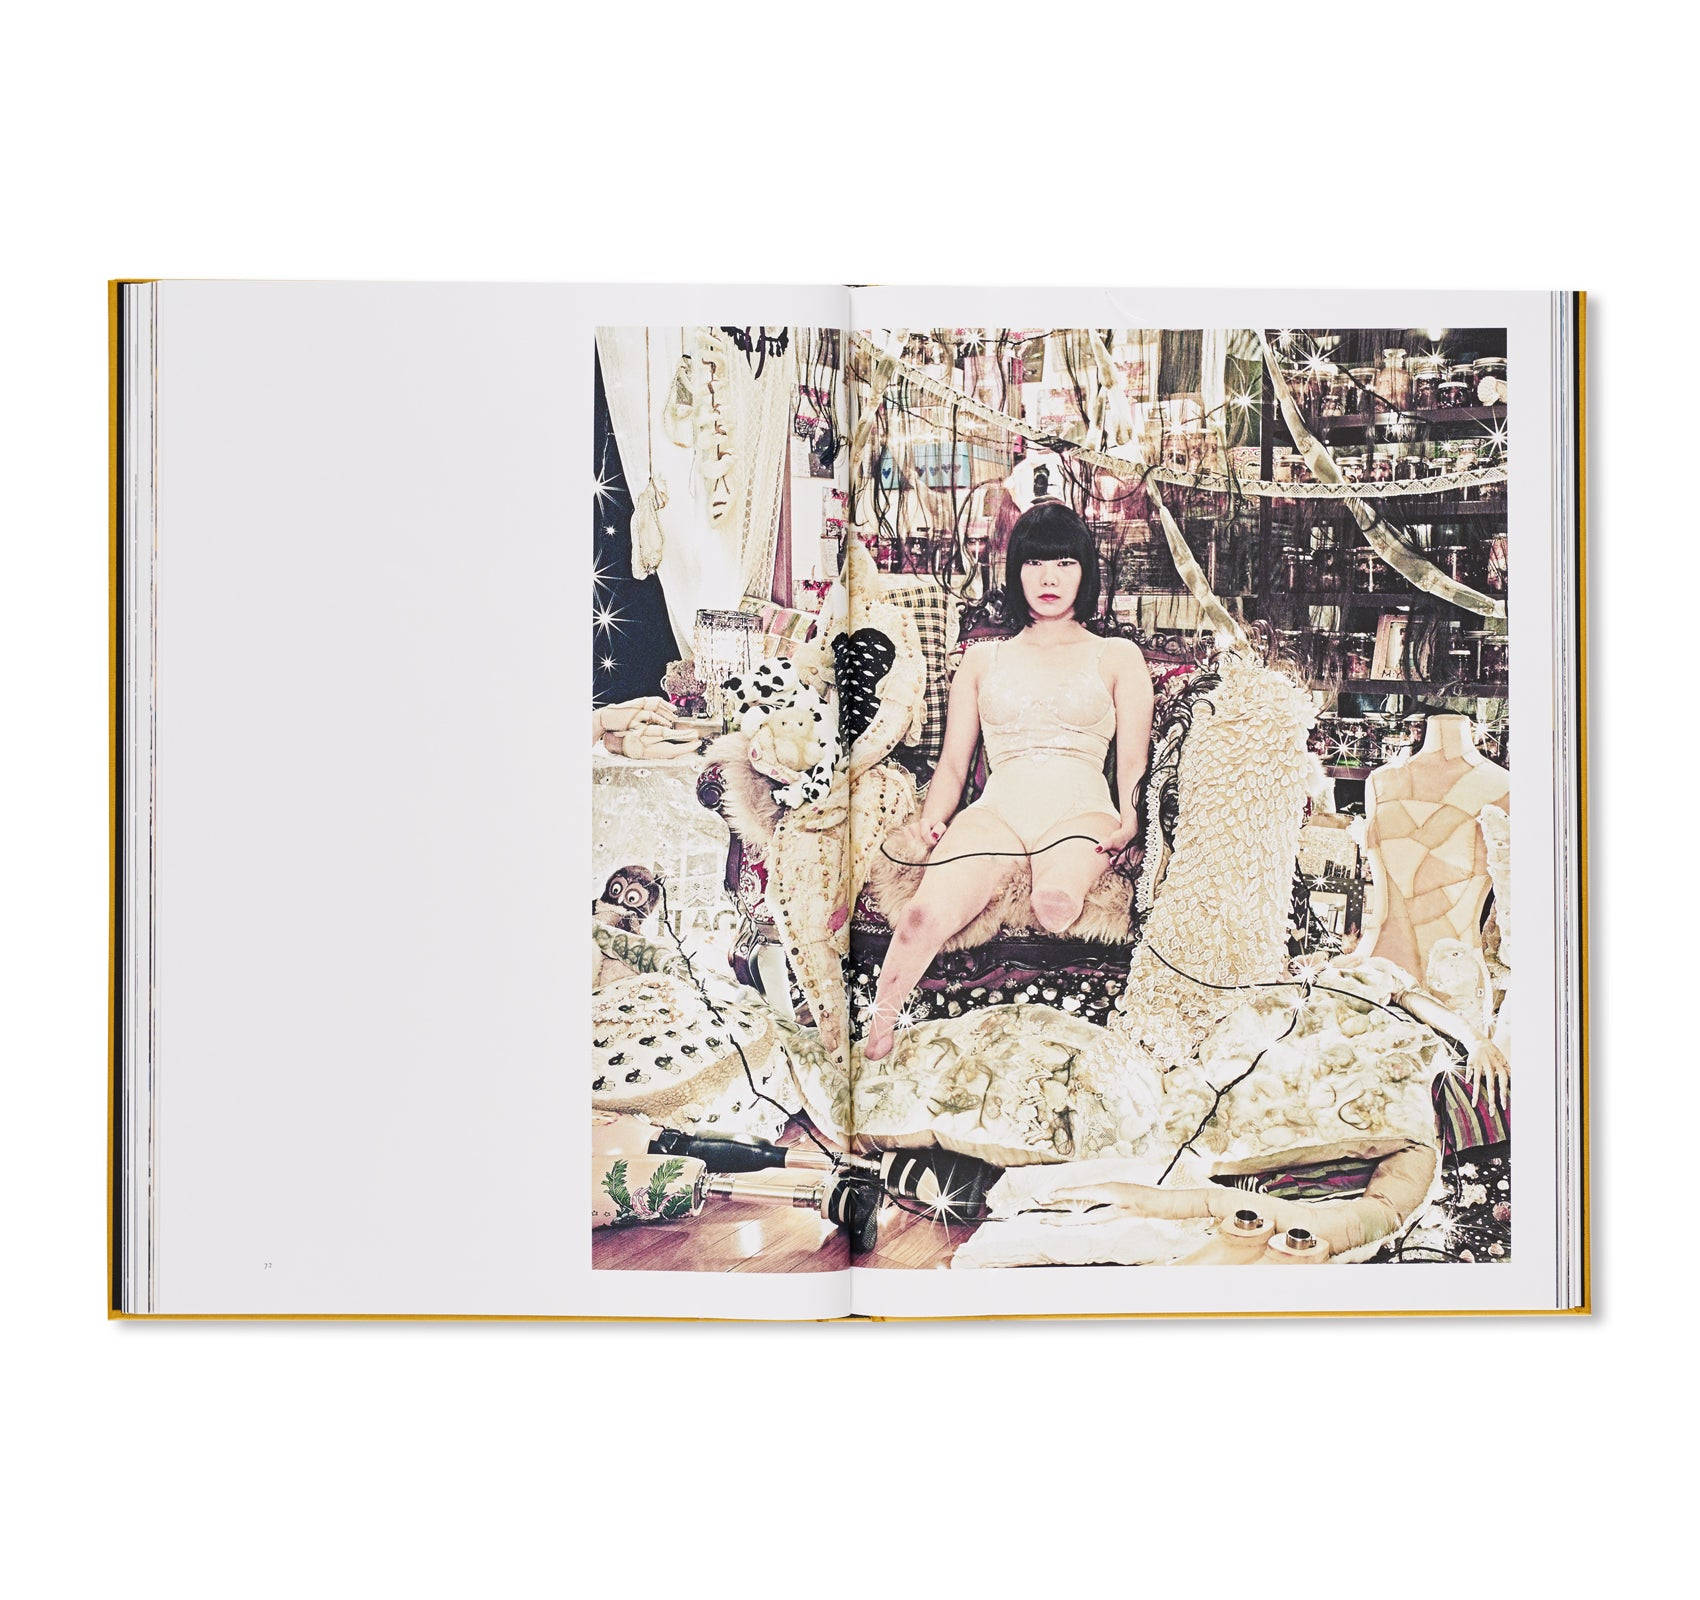 GIFT by Mari Katayama [SIGNED]